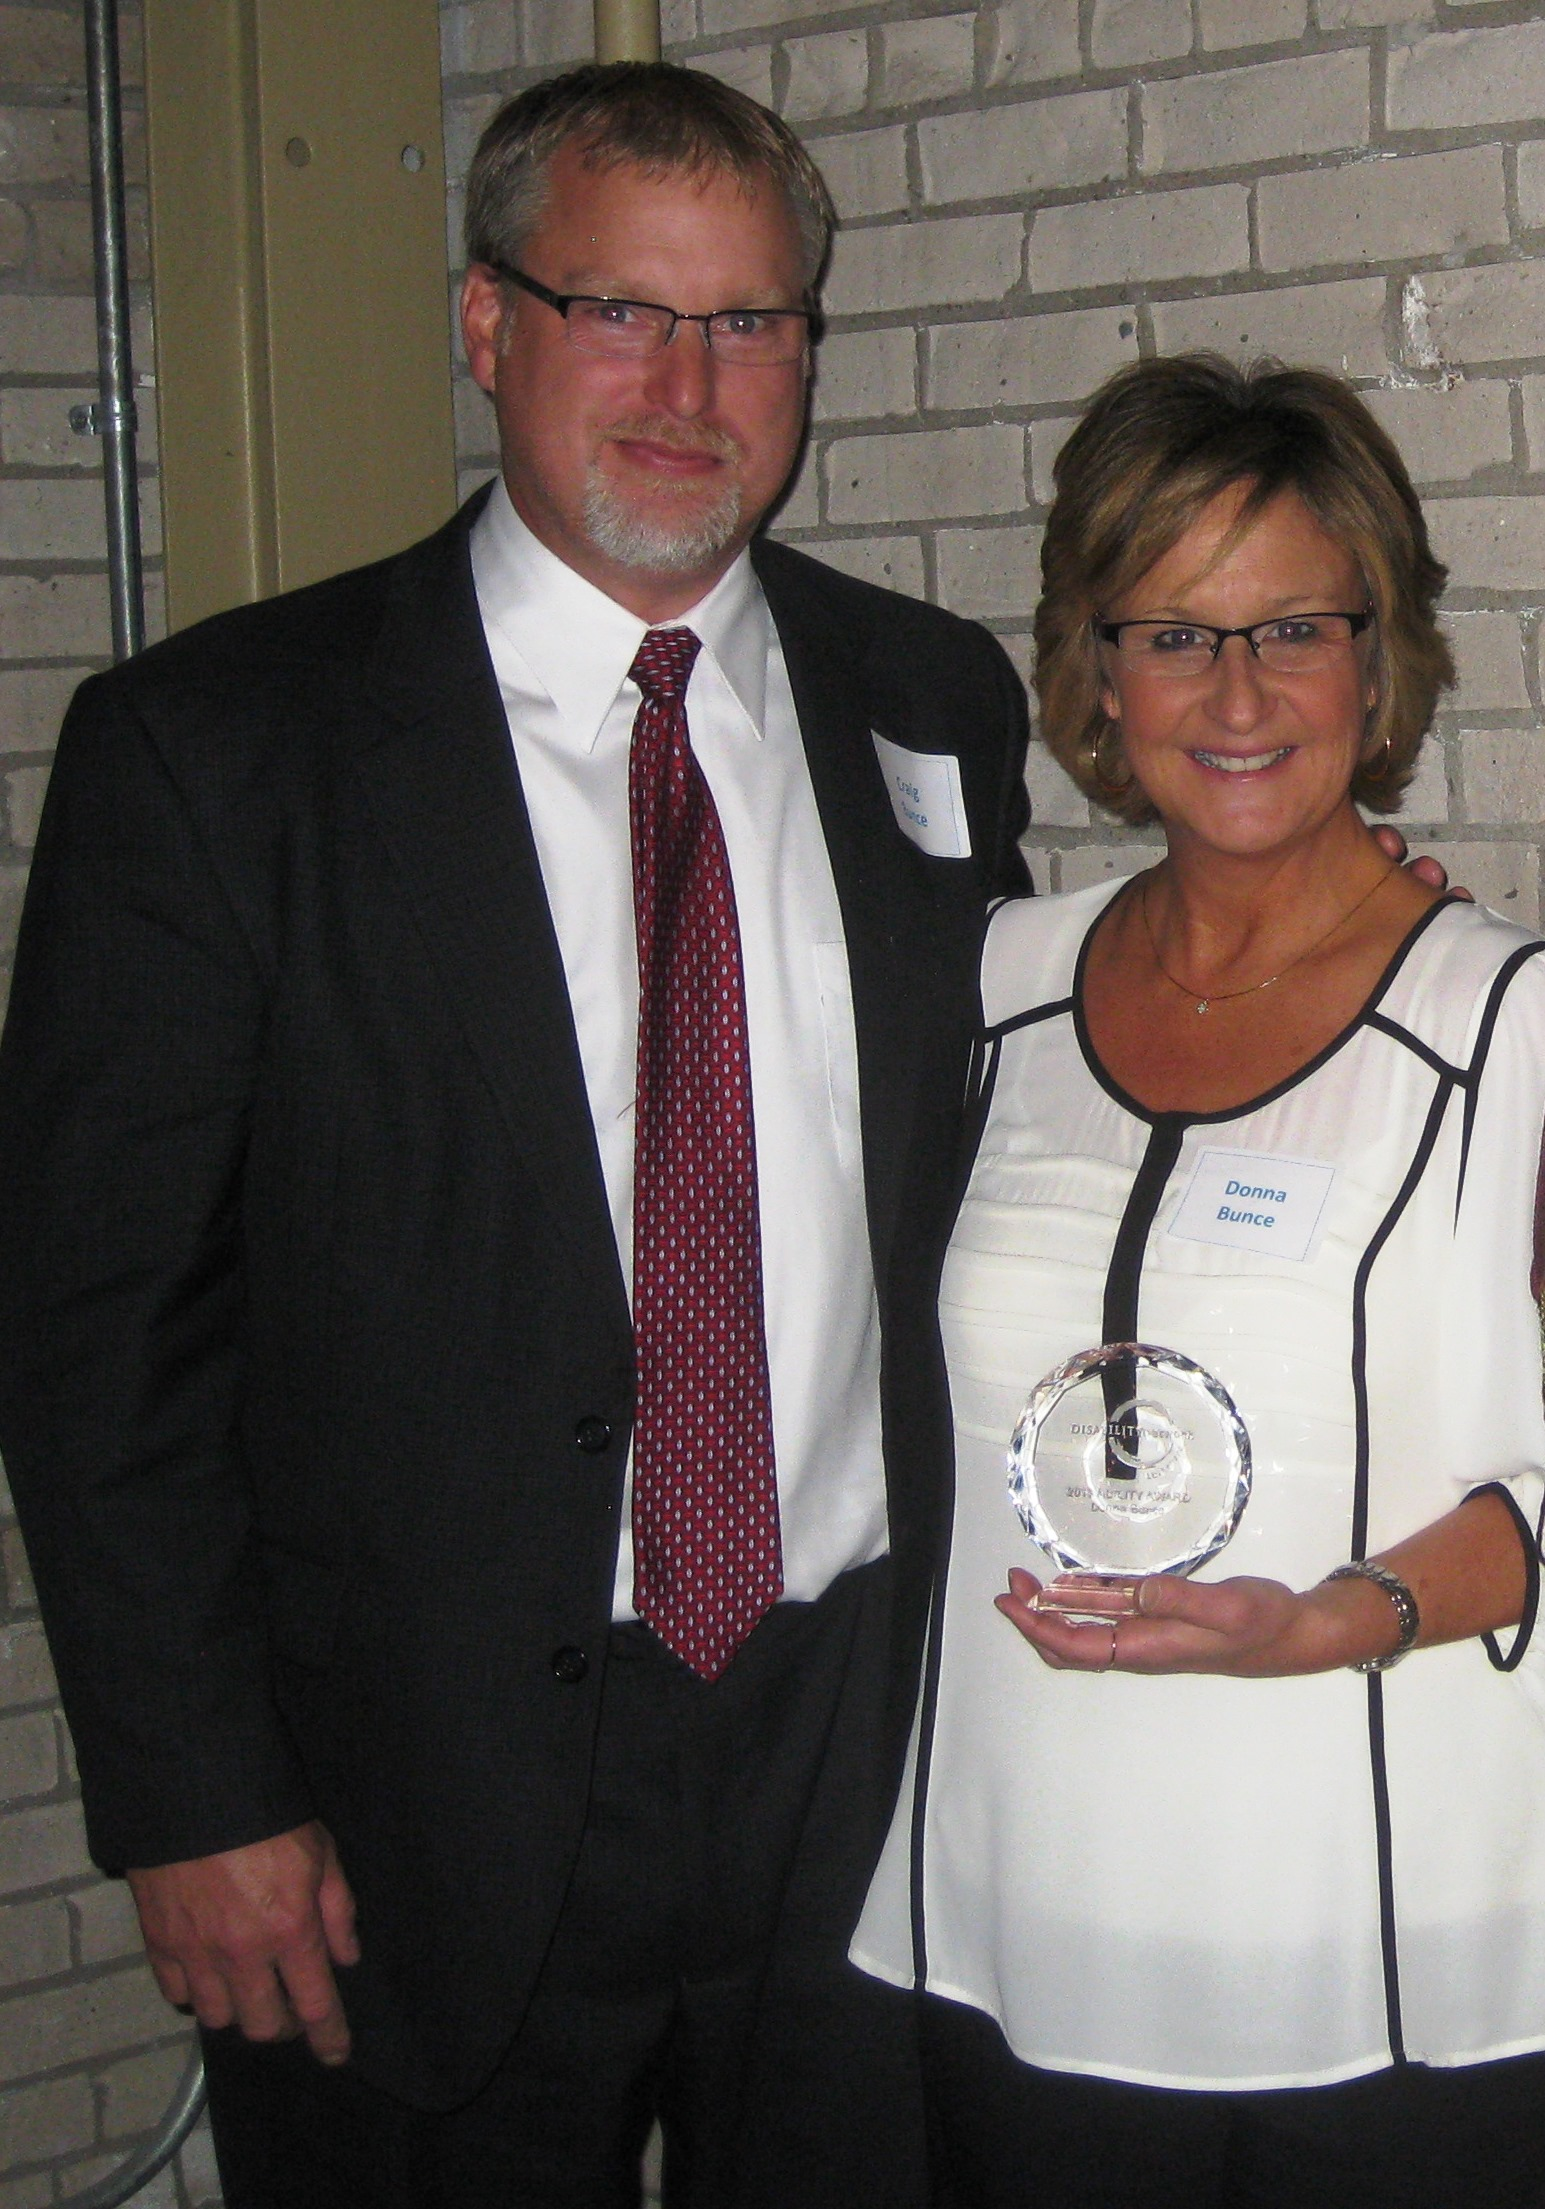 Donna, with her husband Craig, at the Ability Award Ceremony.